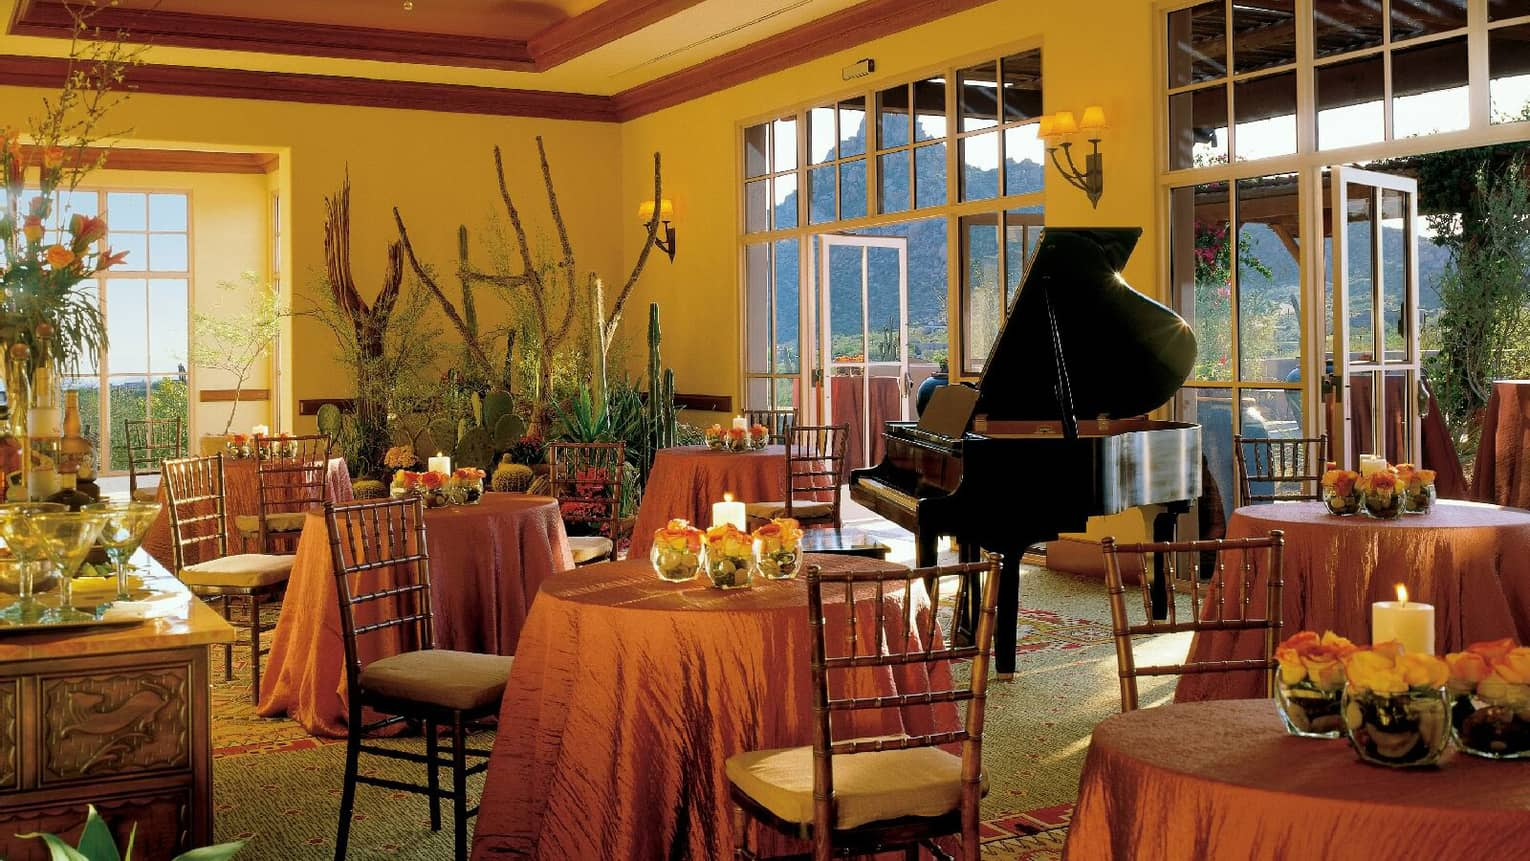 Ironwood foyer with small banquet tables with flowers and candles around Baby Grand piano